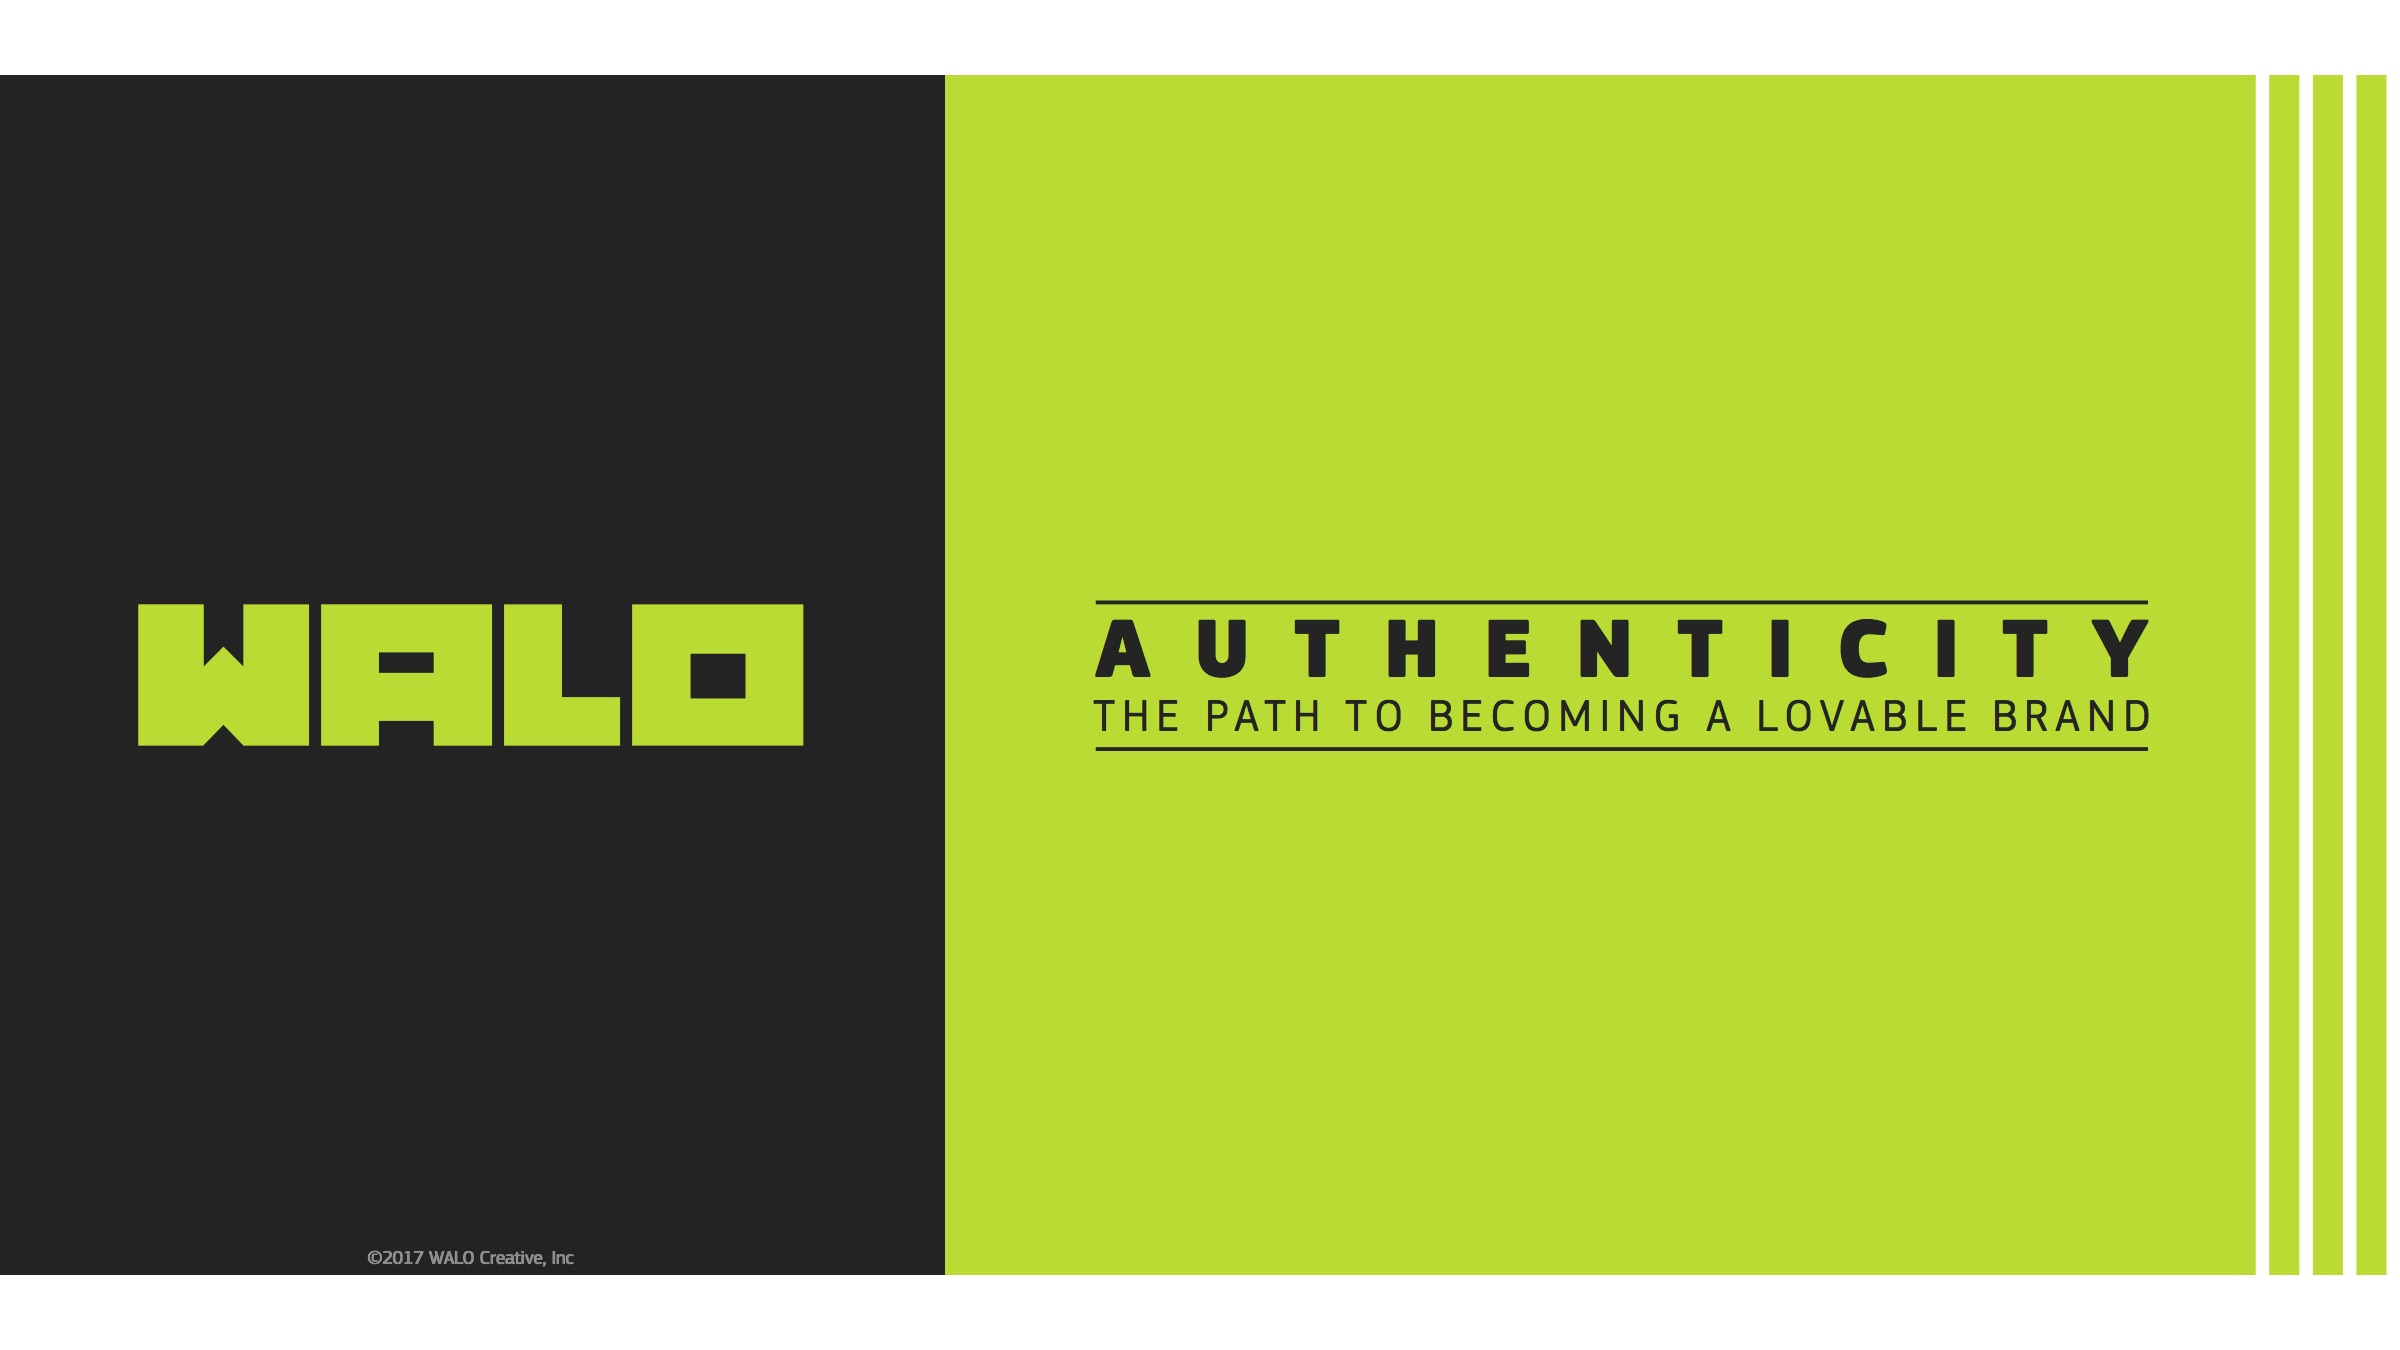 Authenticity: The Path To Becoming A Lovable Brand